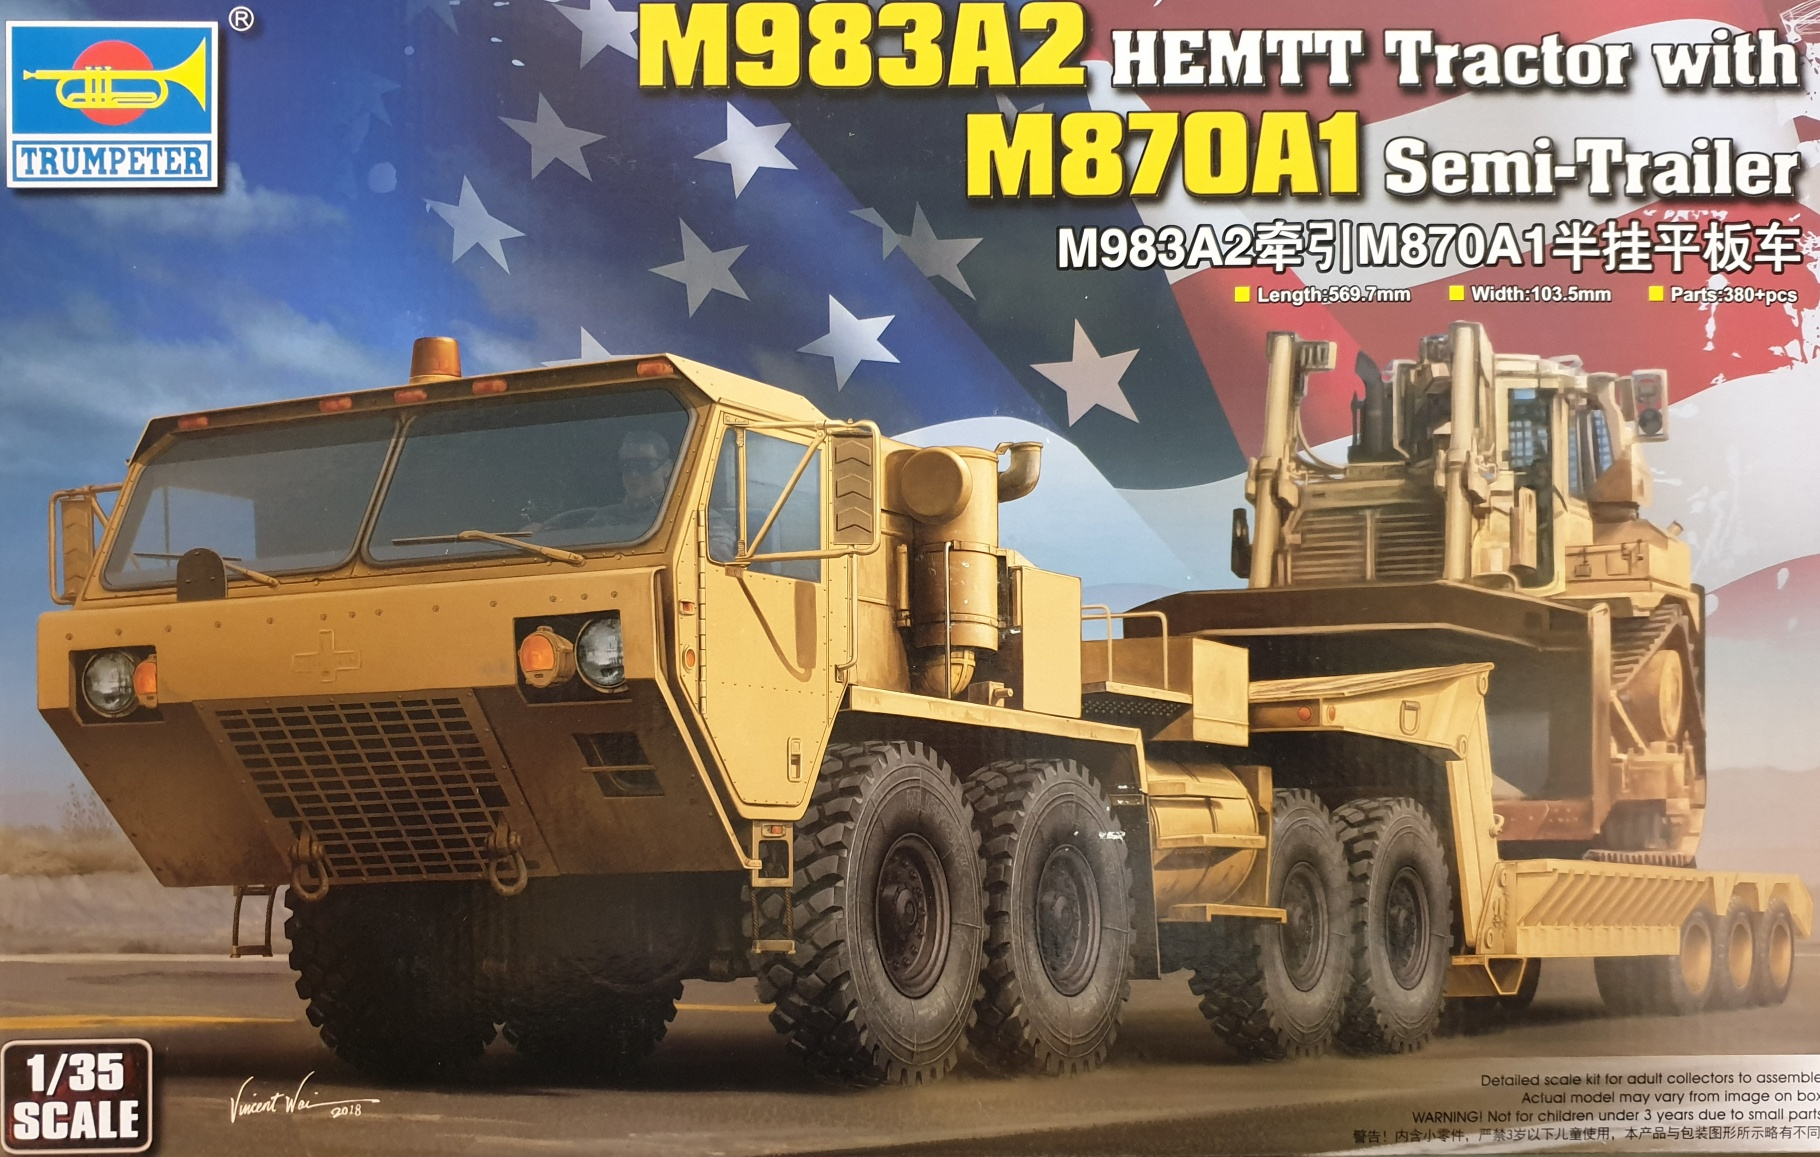 Trumpeter 01055 M983A2 Hemtt Tractor with M870A1 Semi-Trailer